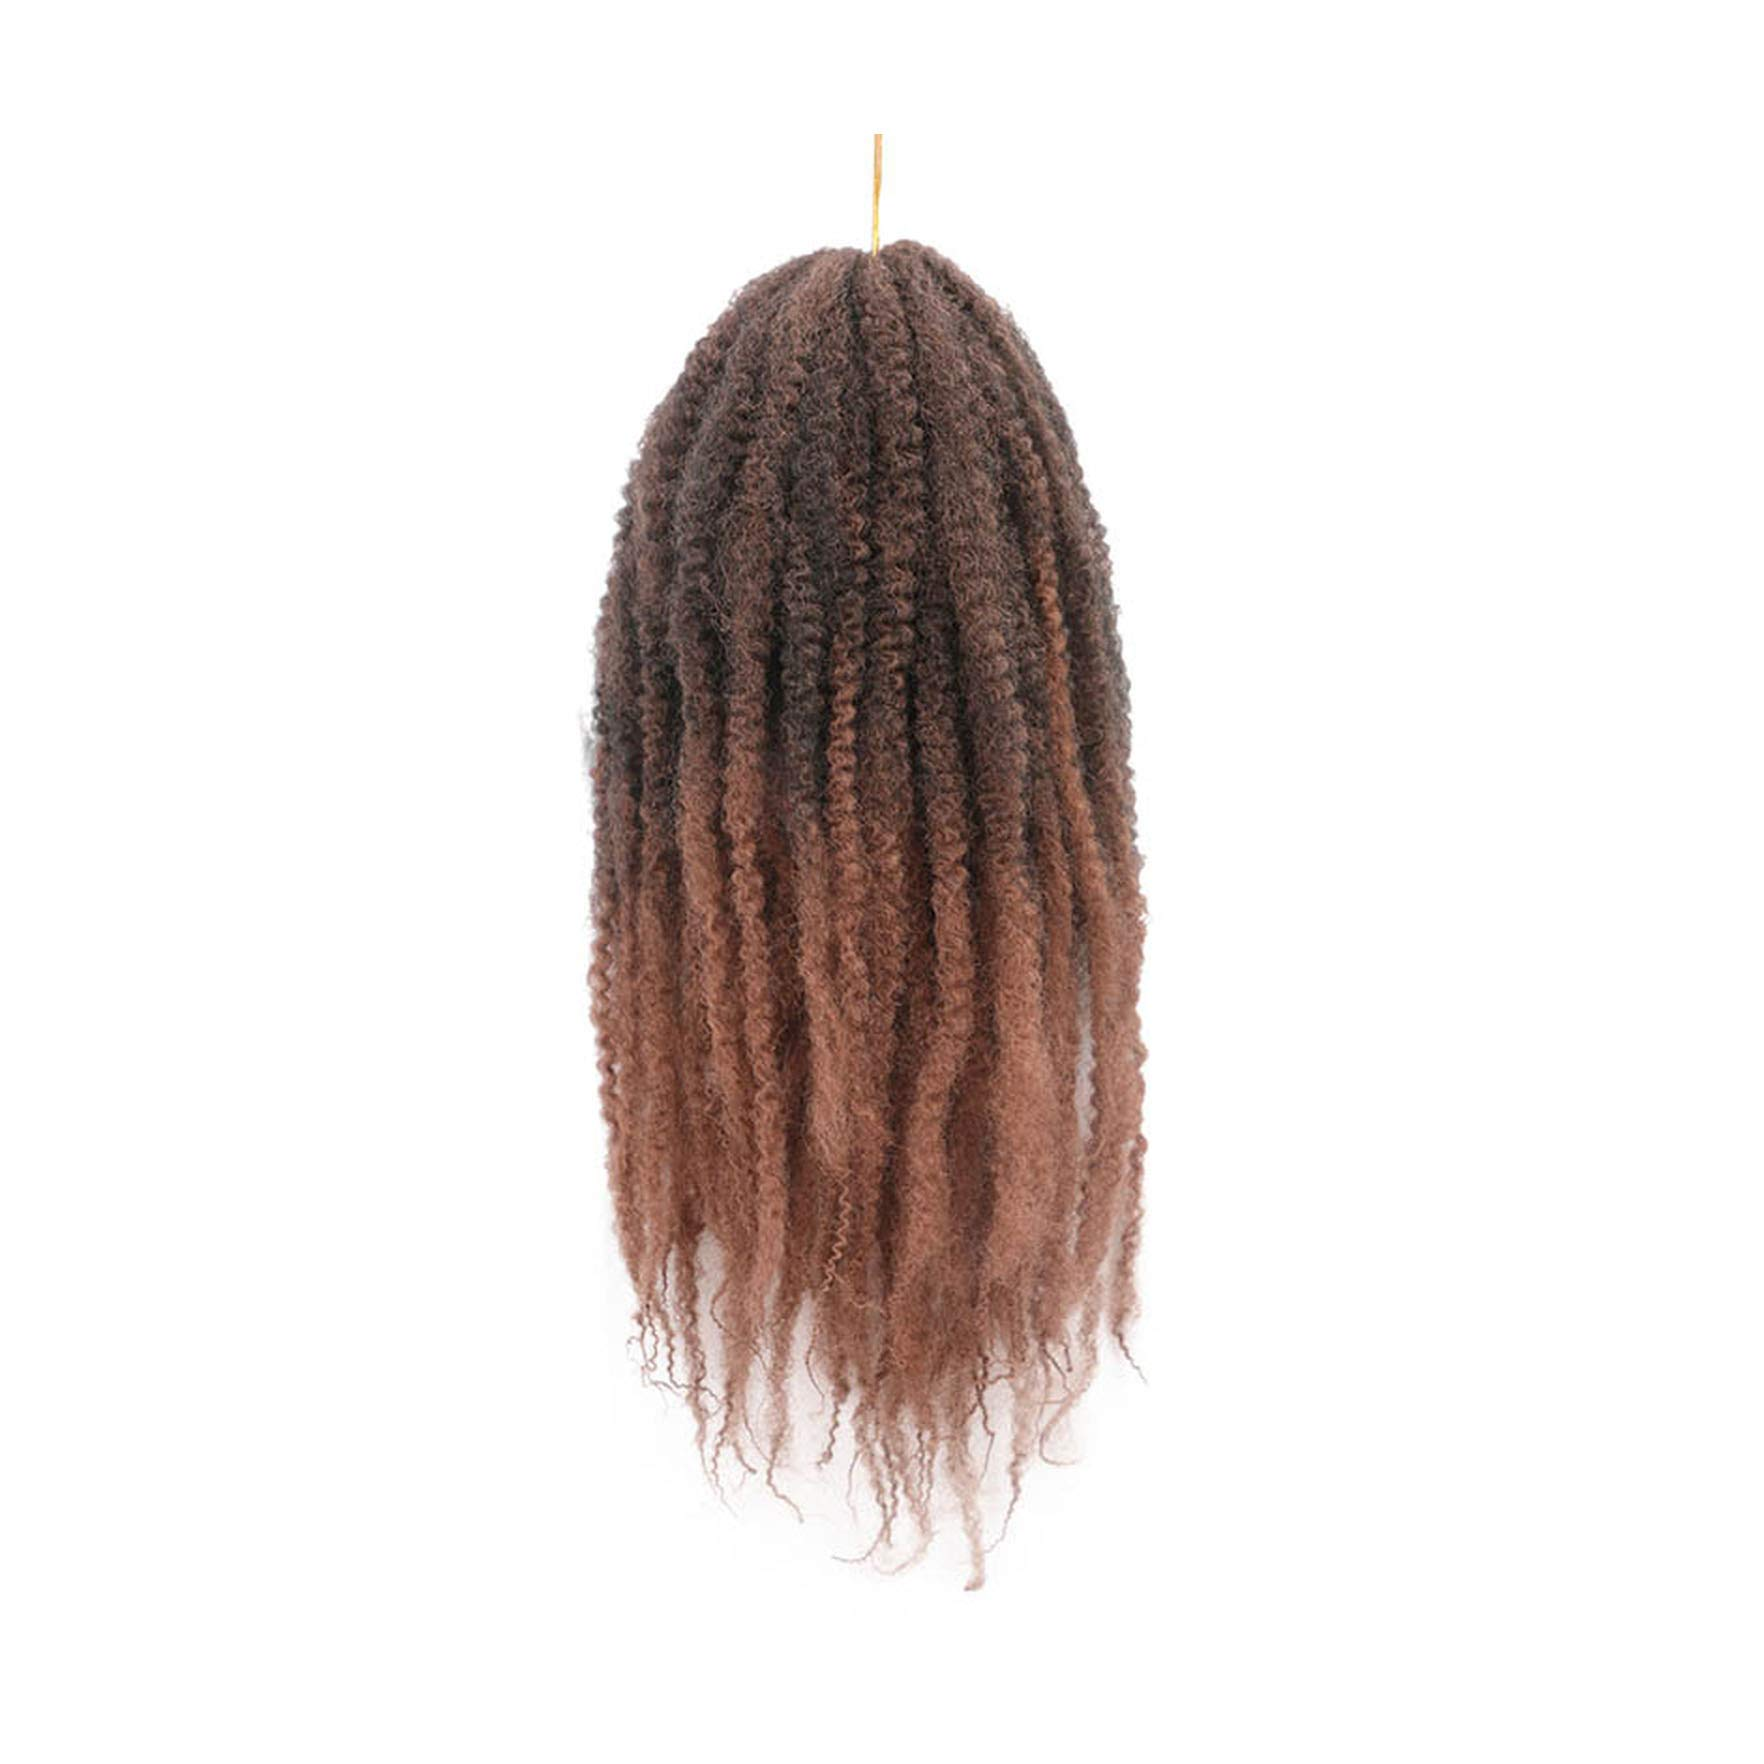 18 Inch Ombre Marley Braids Hair Crochet Afro Kinky Synthetic Braiding Hair Crochet Braids Hair Extensions Bulk Black Brown,M1B/30#,18Inches,10Pcs by Goodforyou21